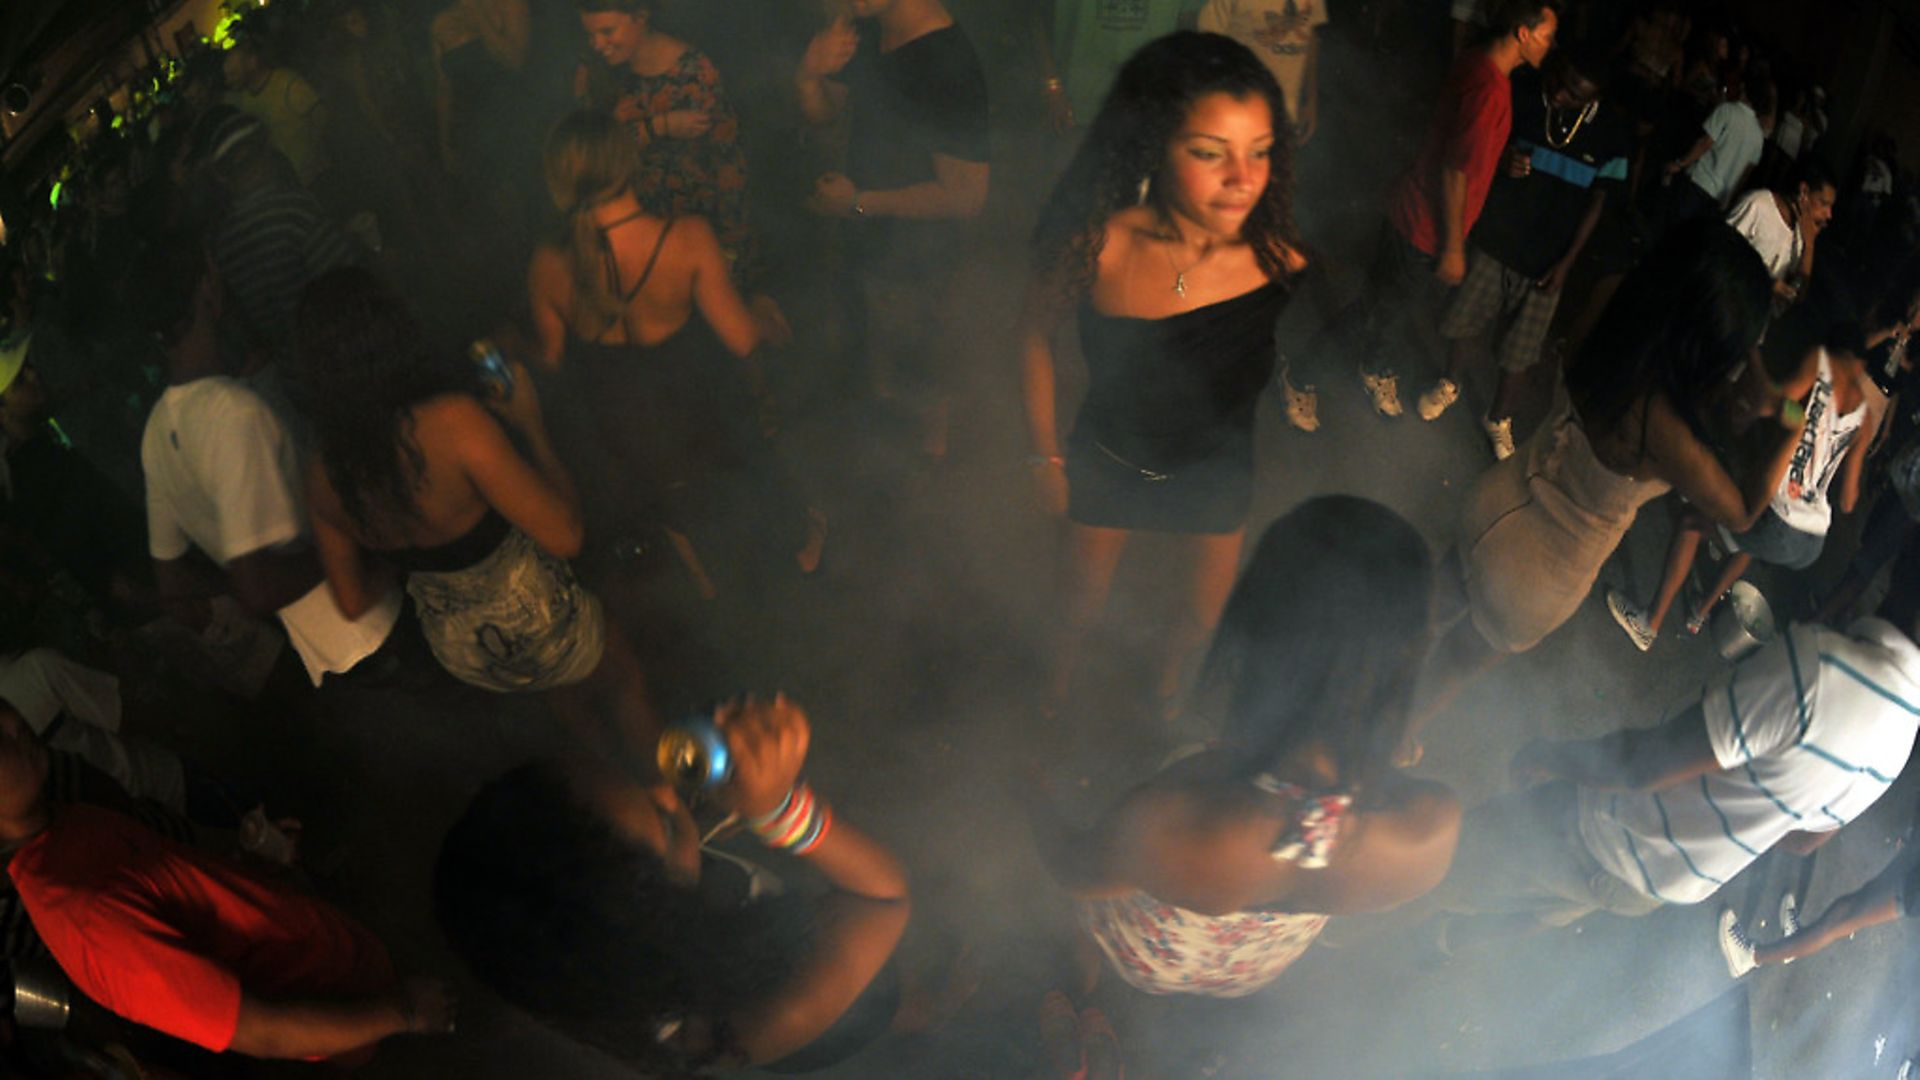 """Brazilian youngsters enjoy a """"Baile Funk"""" party at the Rocinha shantytown, in Rio de Janeiro, on March 25, 2012. In the last year, funk parties have been losing ground due to the police occupation in the favelas. AFP PHOTO / Christophe Simon (Photo credit should read CHRISTOPHE SIMON/AFP/Getty Images) - Credit: AFP/Getty Images"""